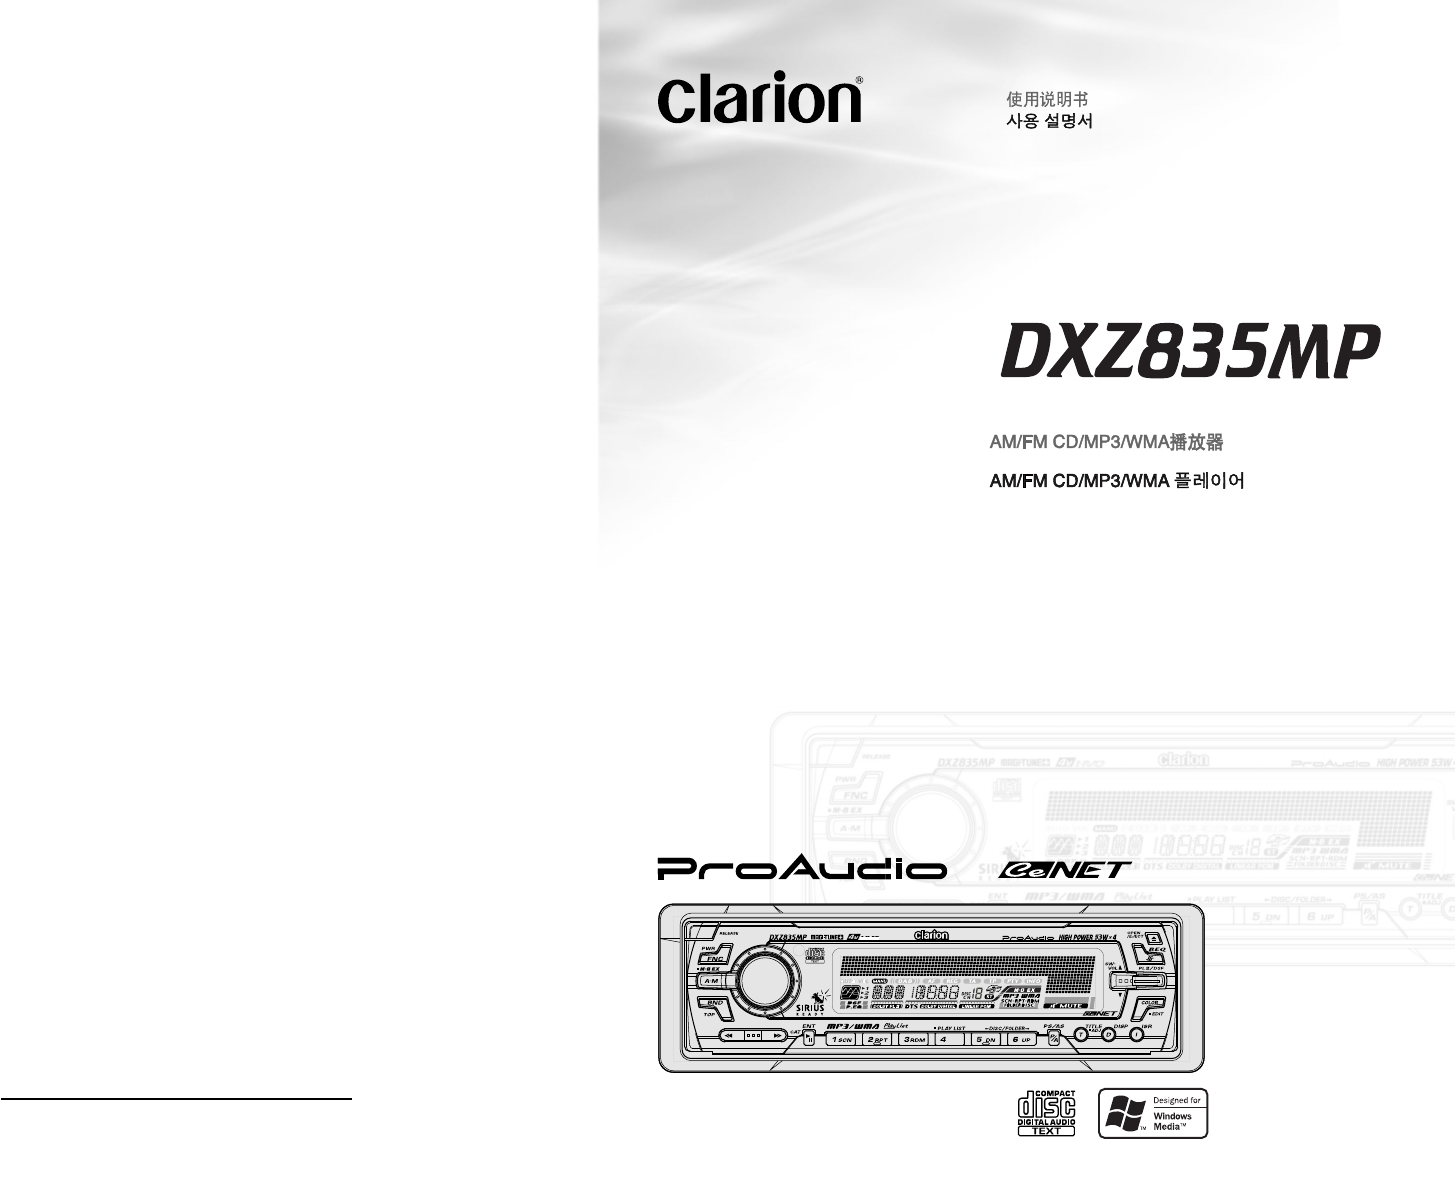 Wiring Diagram For Clarion Model Drb3675 Trusted Drb4475 Car Radio Stereo System Dxz835mp User Guide Manualsonline Com Kenwood Audio